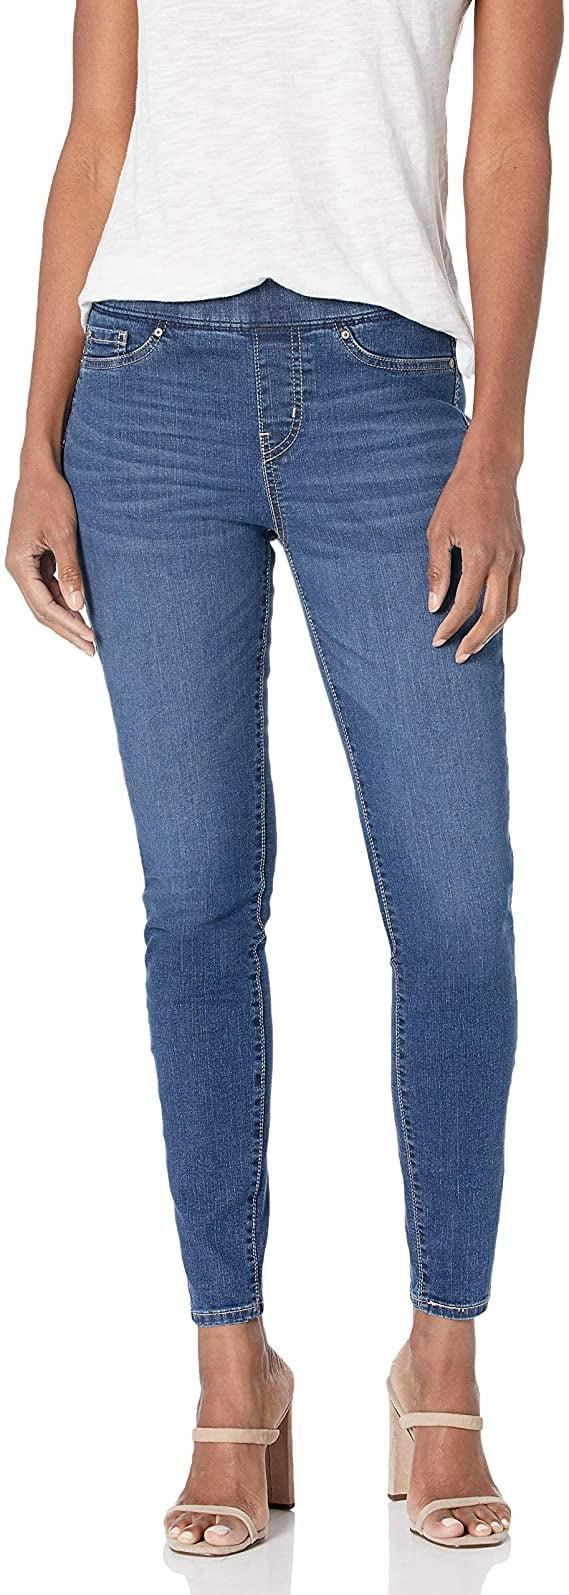 <p><span>Signature by Levi Strauss &amp; Co. Gold Label Totally Shaping Pull-On Skinny Jeans</span> ($23, originally $28)</p>